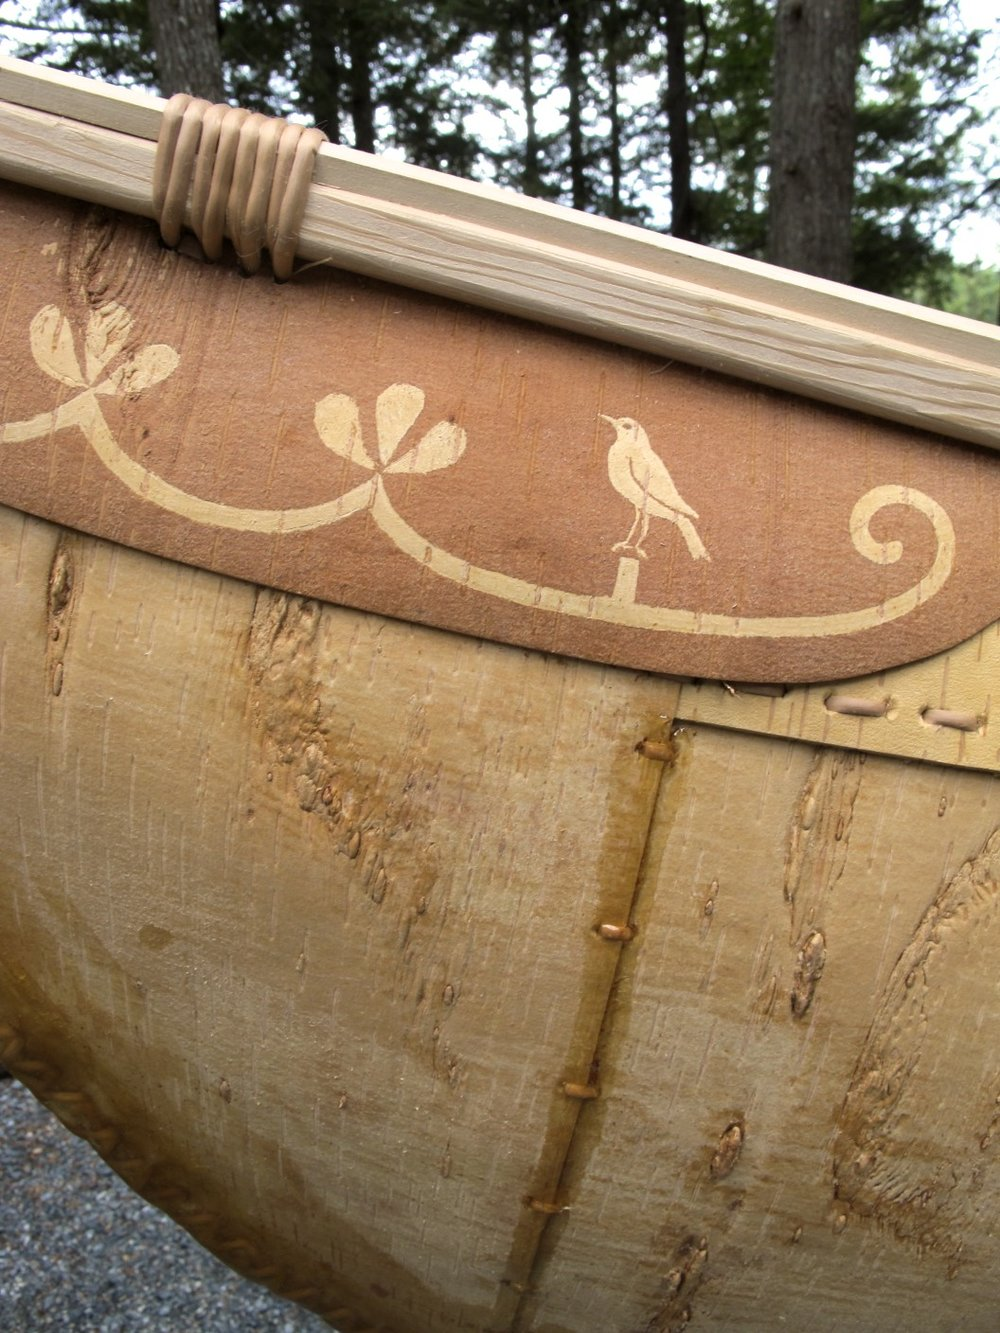 Steve's mark on canoe (edited).jpg